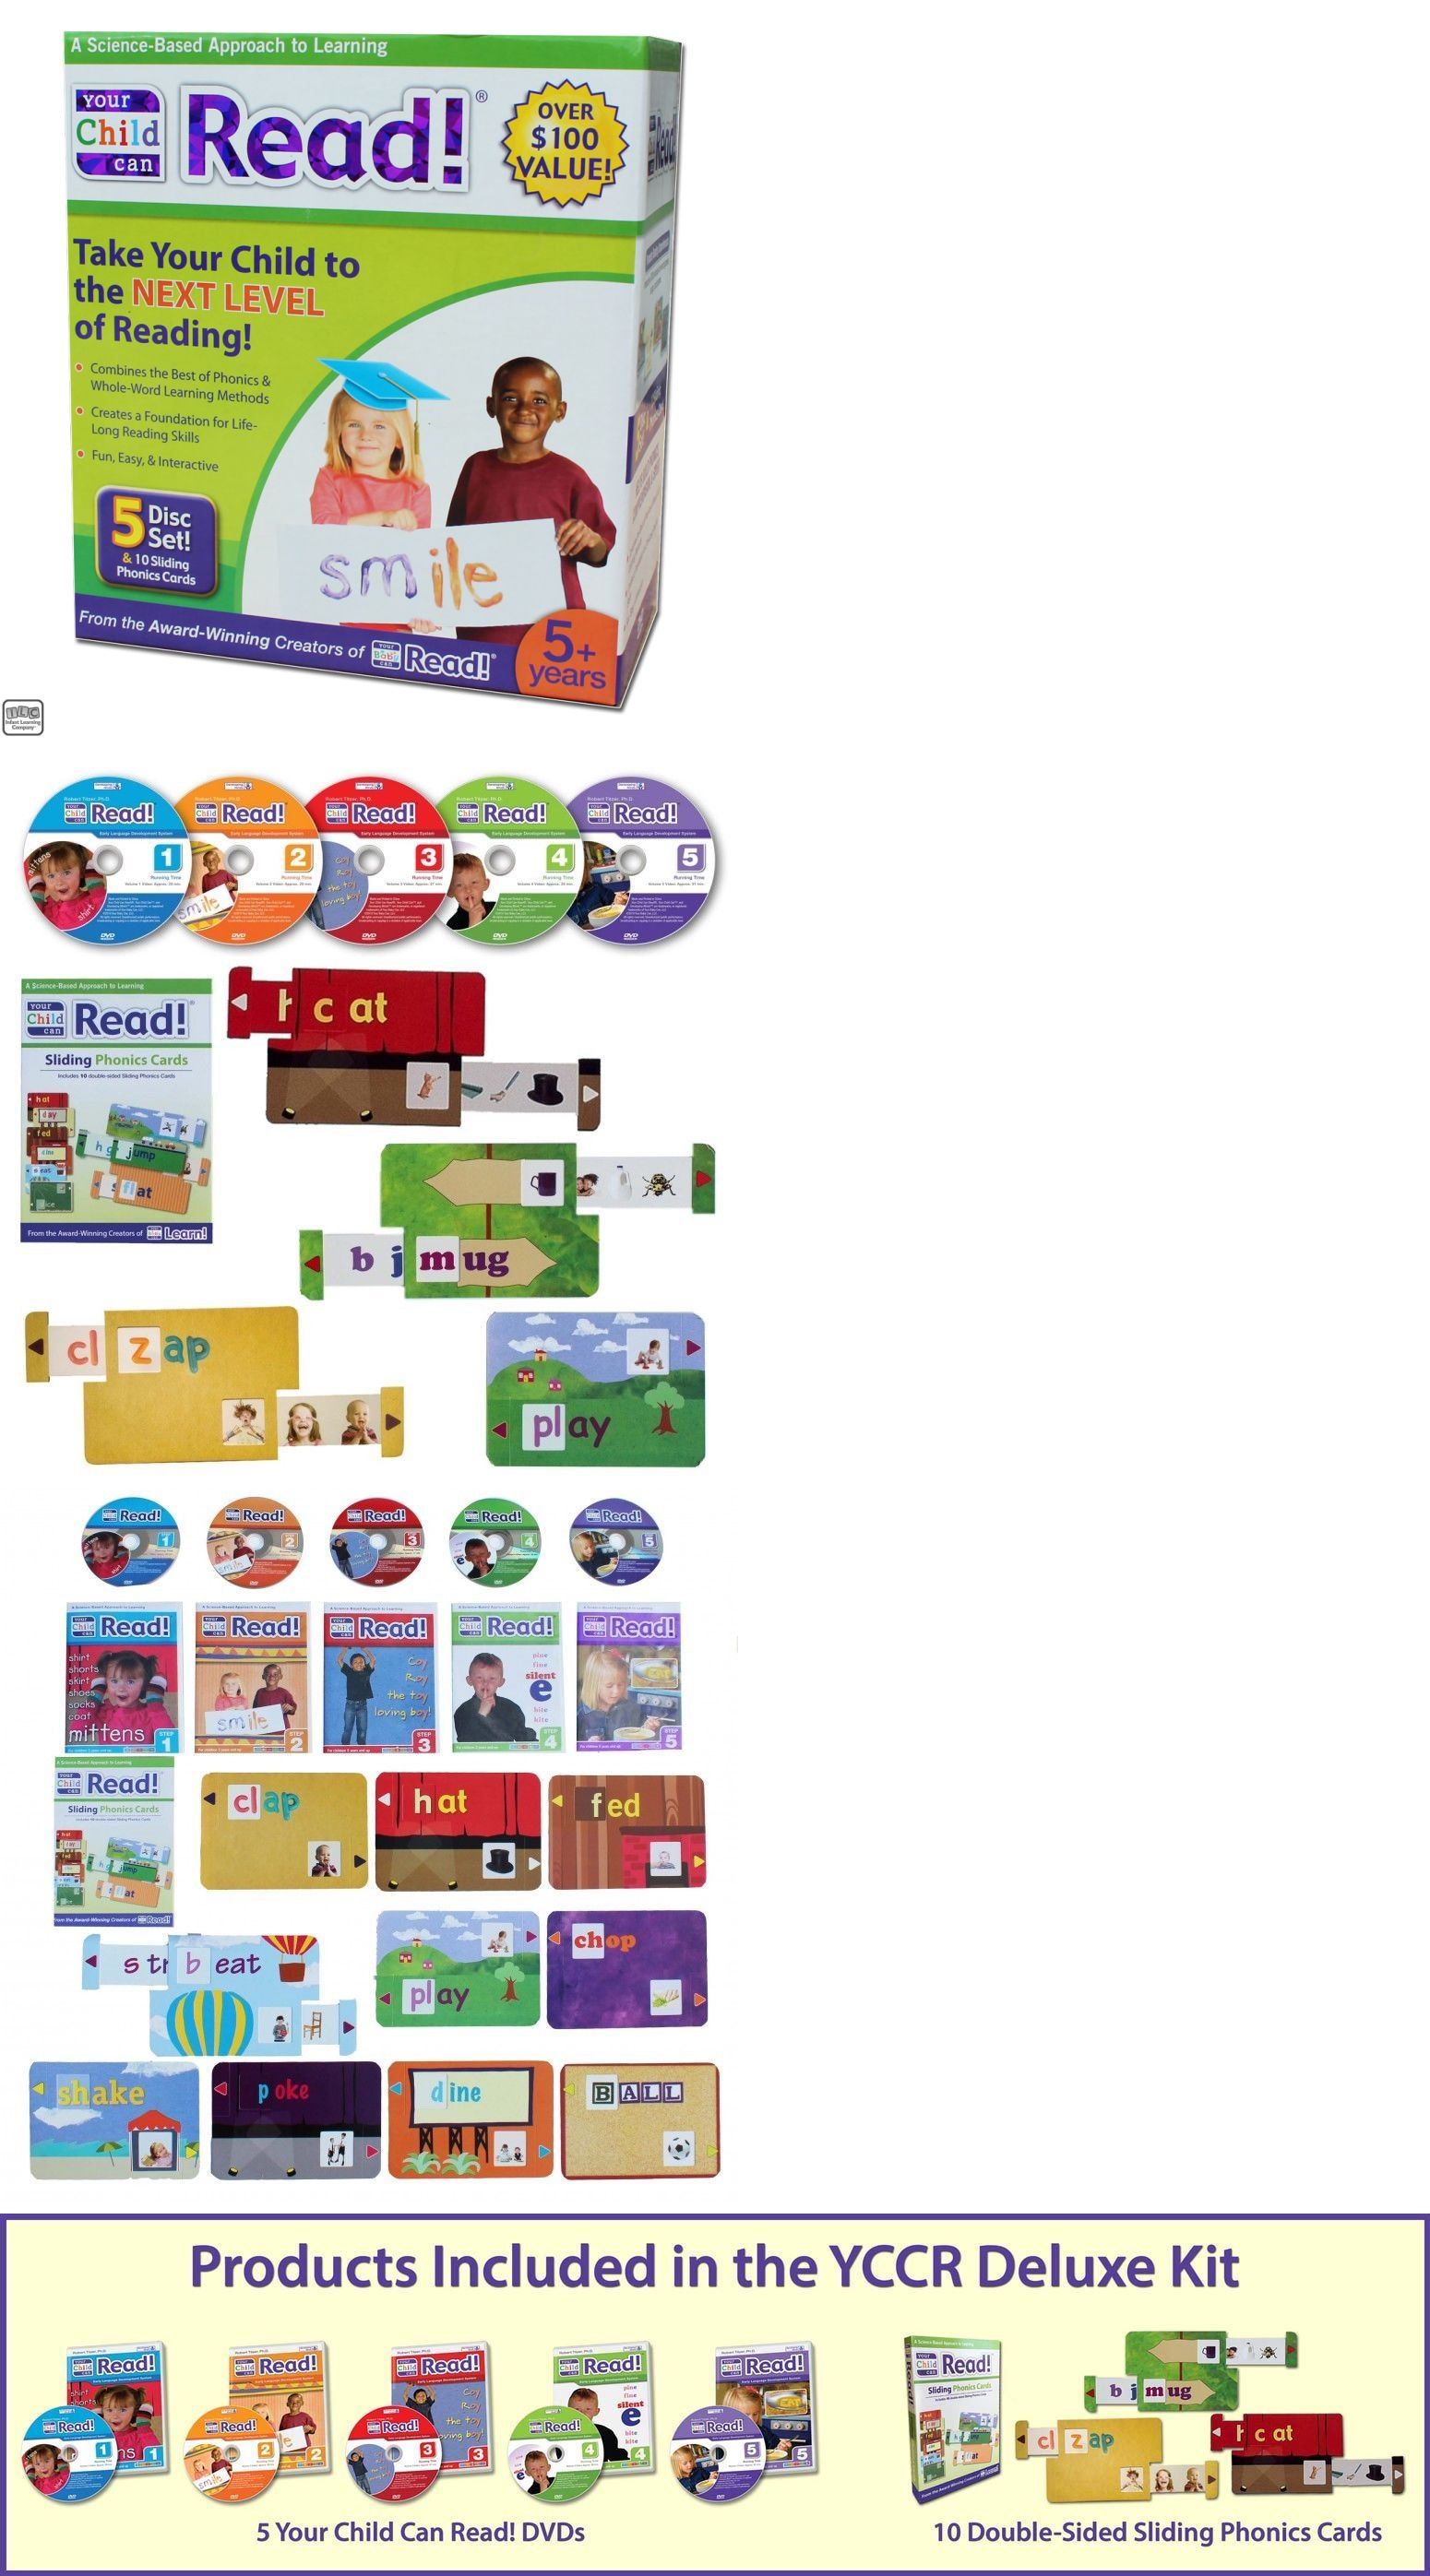 Details about Your Child Can Read! Deluxe Kit Kids